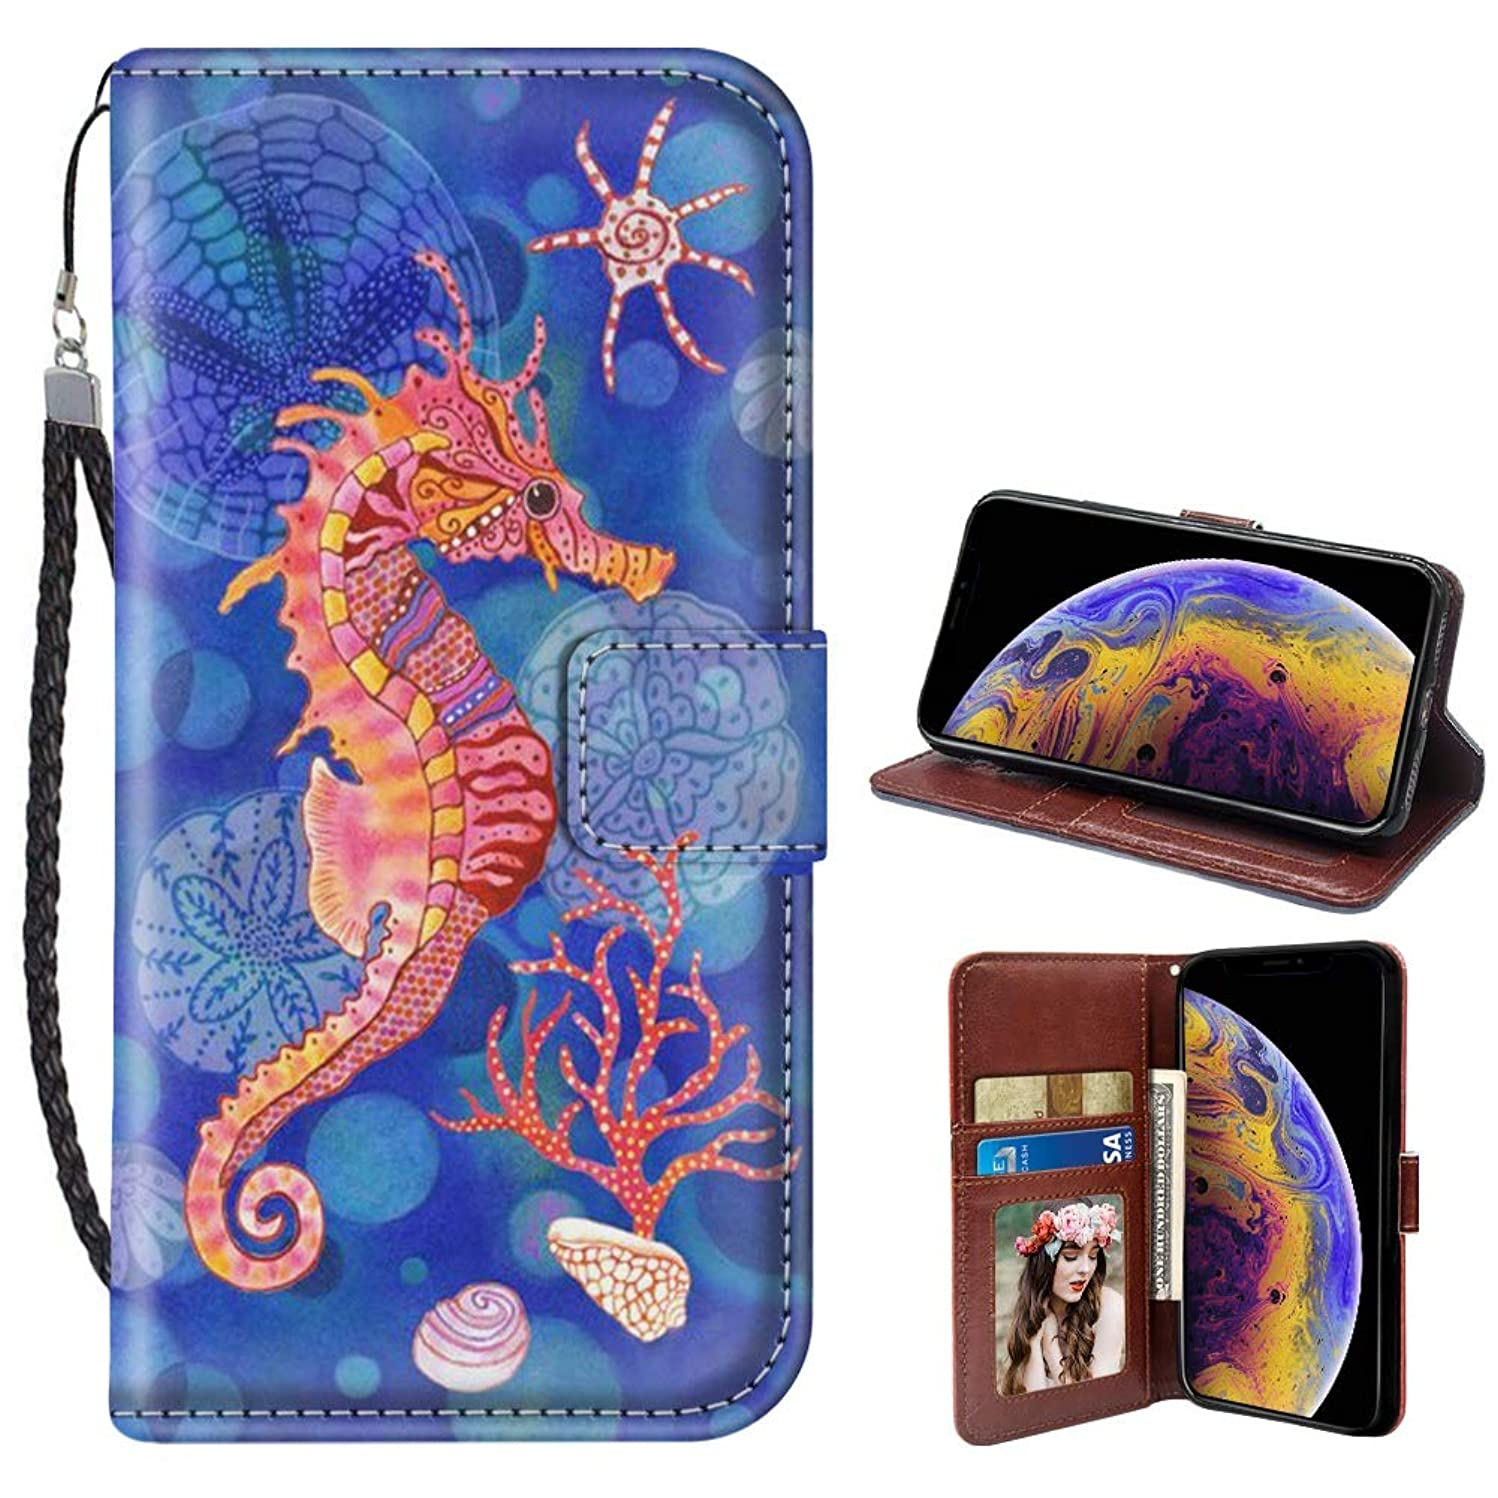 Seahorse iPhone Xr Case for Kickstand PU Leather Card Slot Magnetic Flip Wristlet Phone Cover iPhone Xr Wallet Case Seahorse